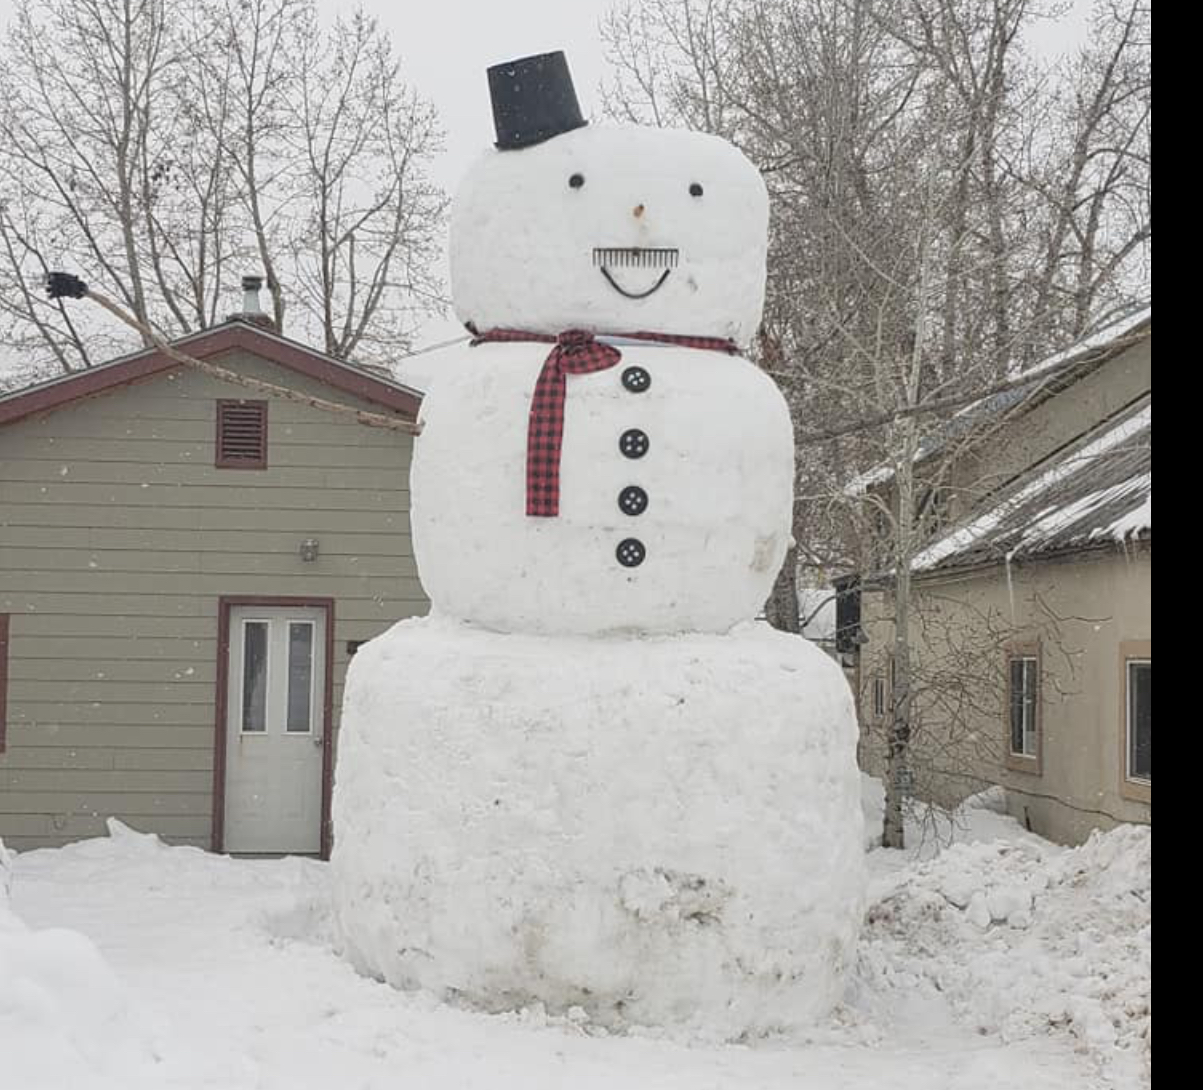 Giant snowman made by Jeremiah Bush and his son.